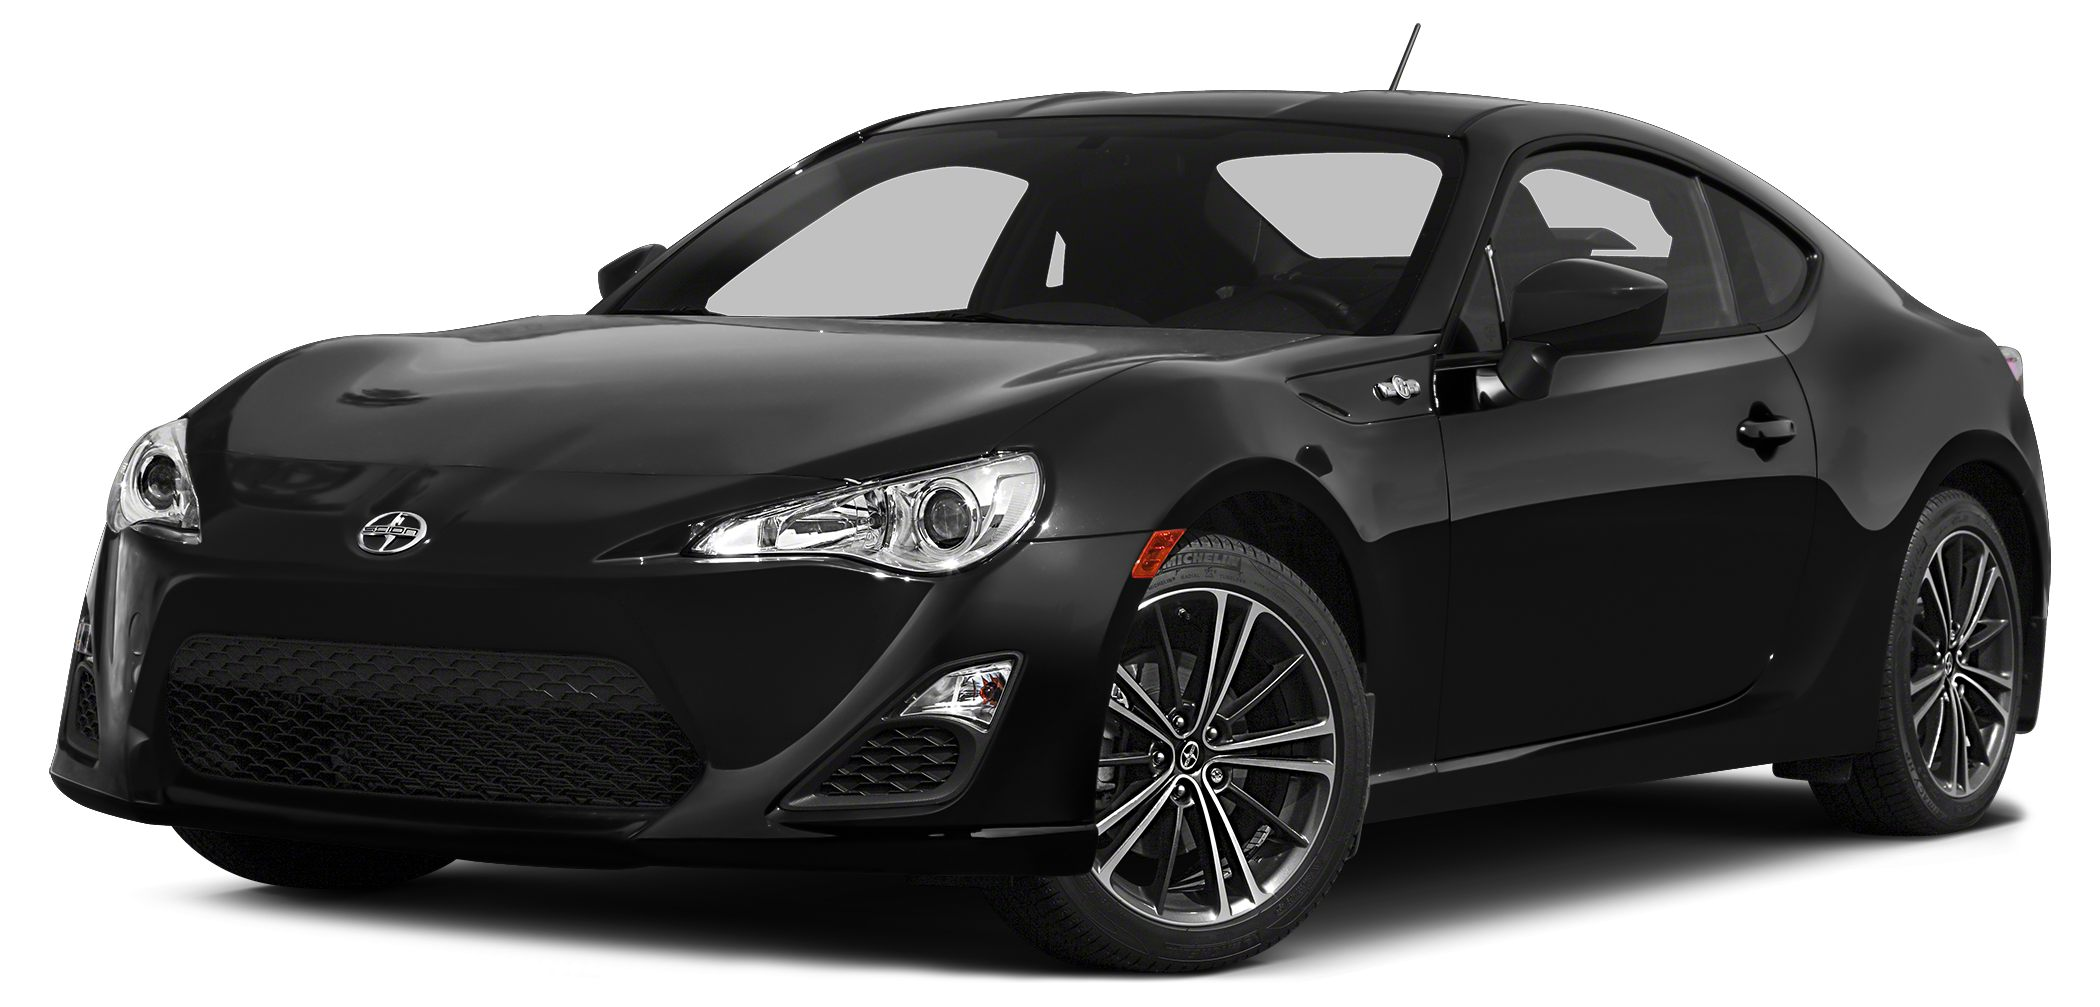 2013 Scion FR-S  Other features include Bluetooth Power locks Power windows Cruise control 2